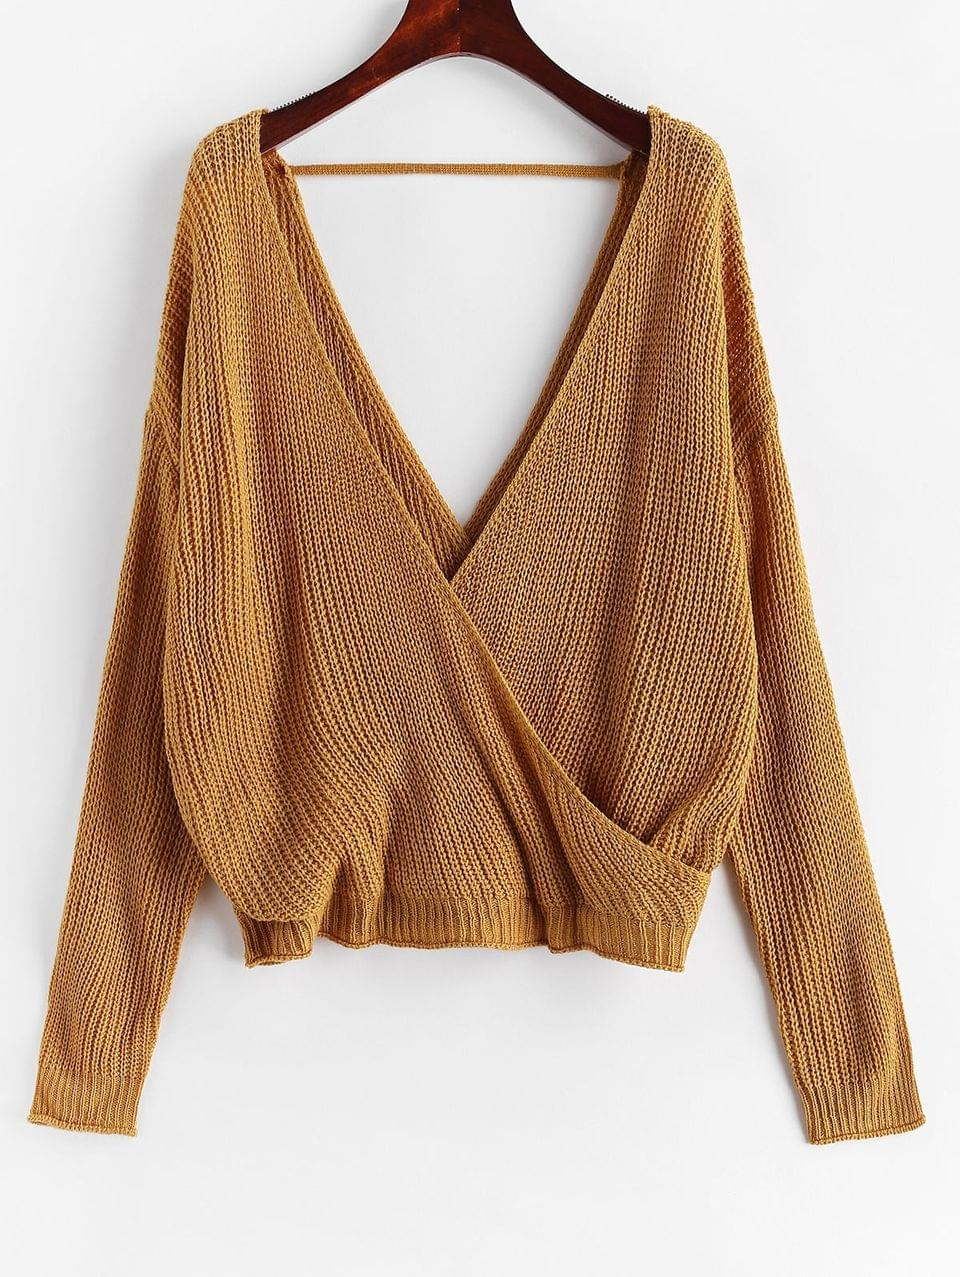 Women's Surplice Plunging Backless Cutout Sweater - Caramel L